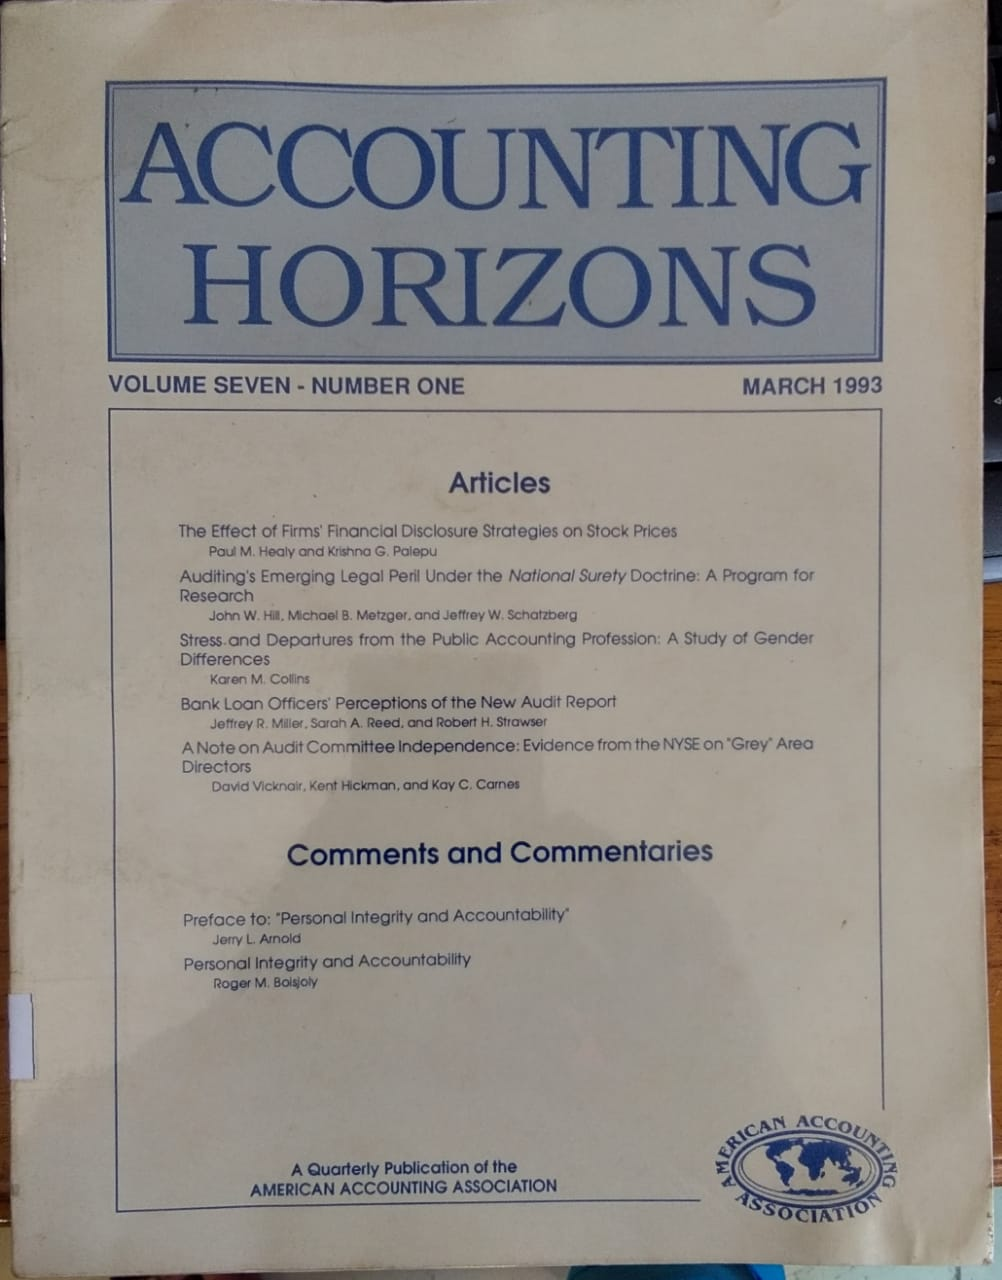 Accounting Horizons